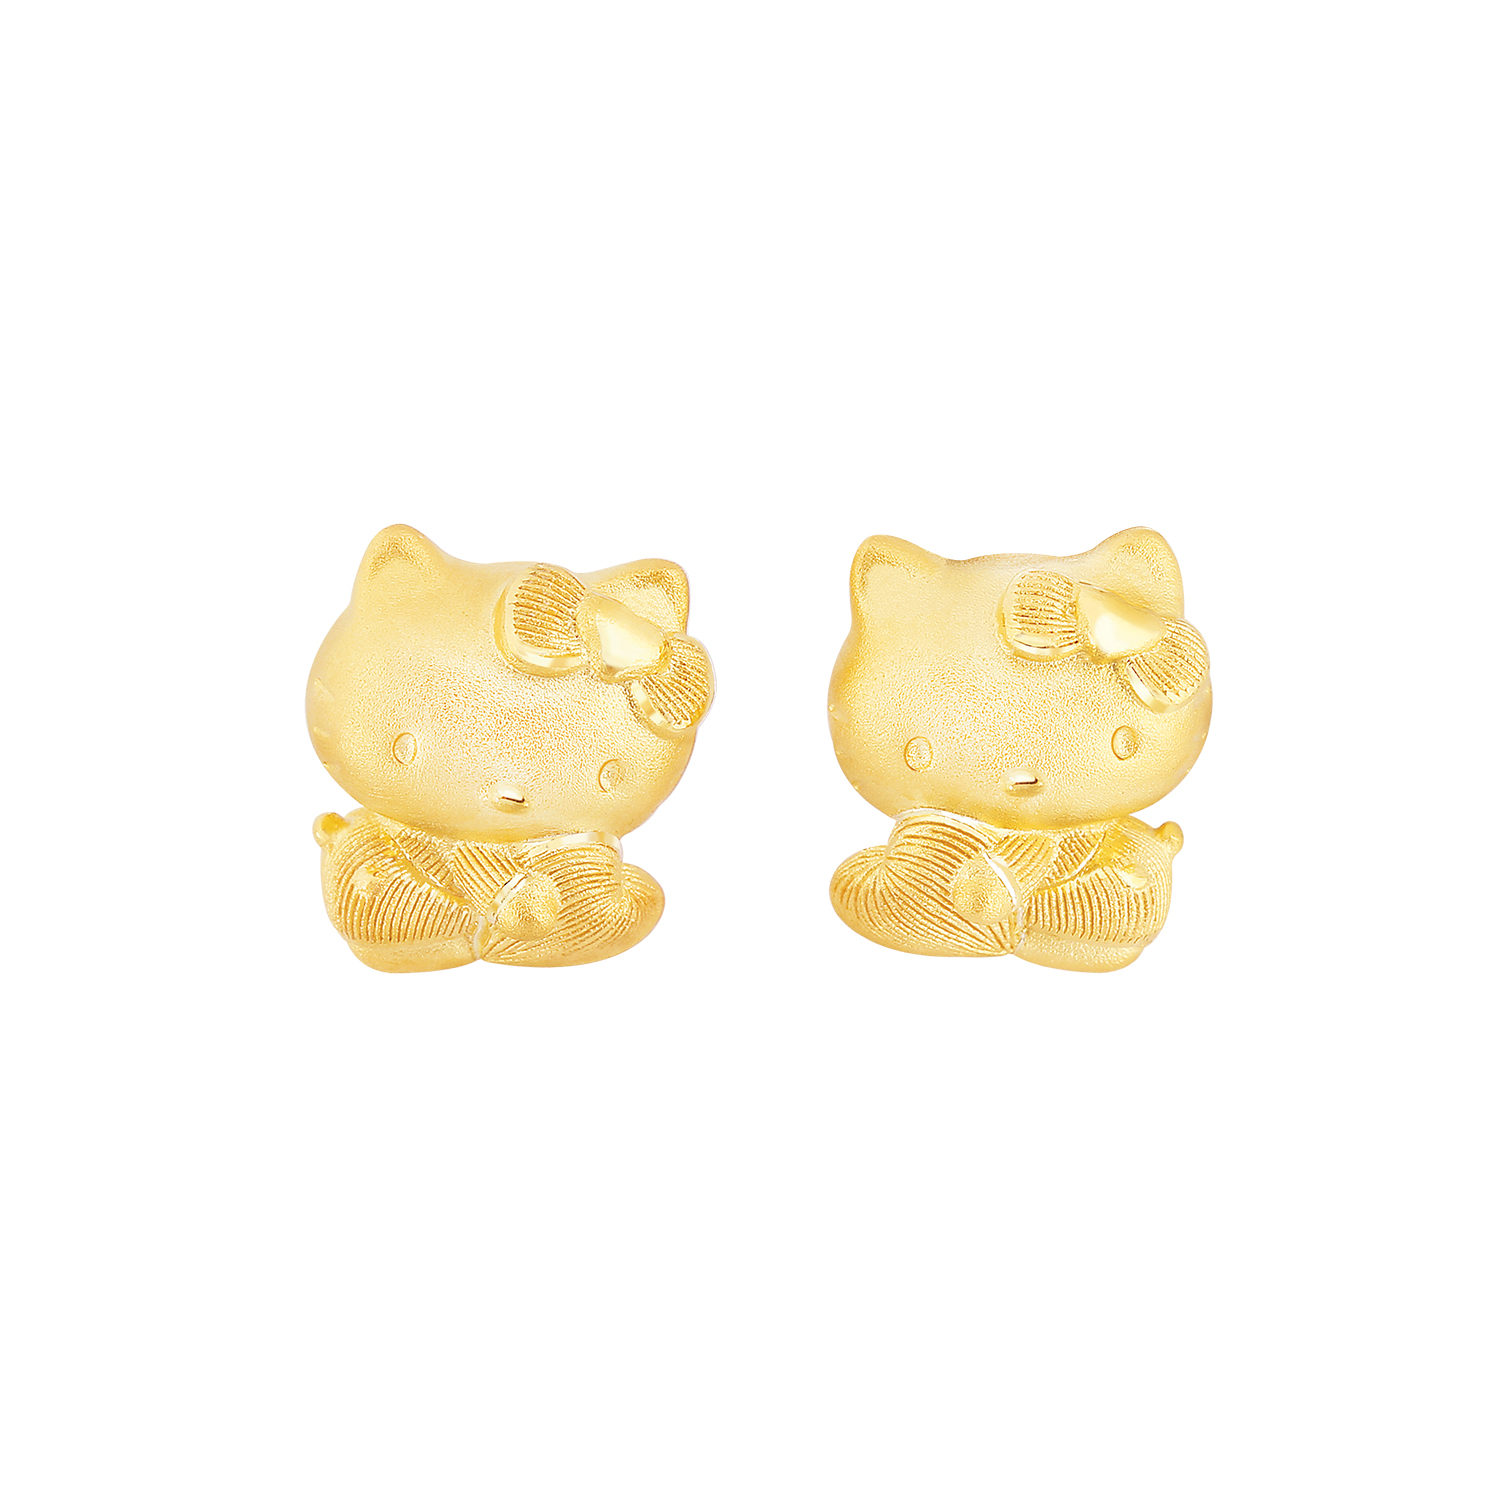 037004cfd Hello Kitty Earring – Prima Gold – พรีม่าโกลด์